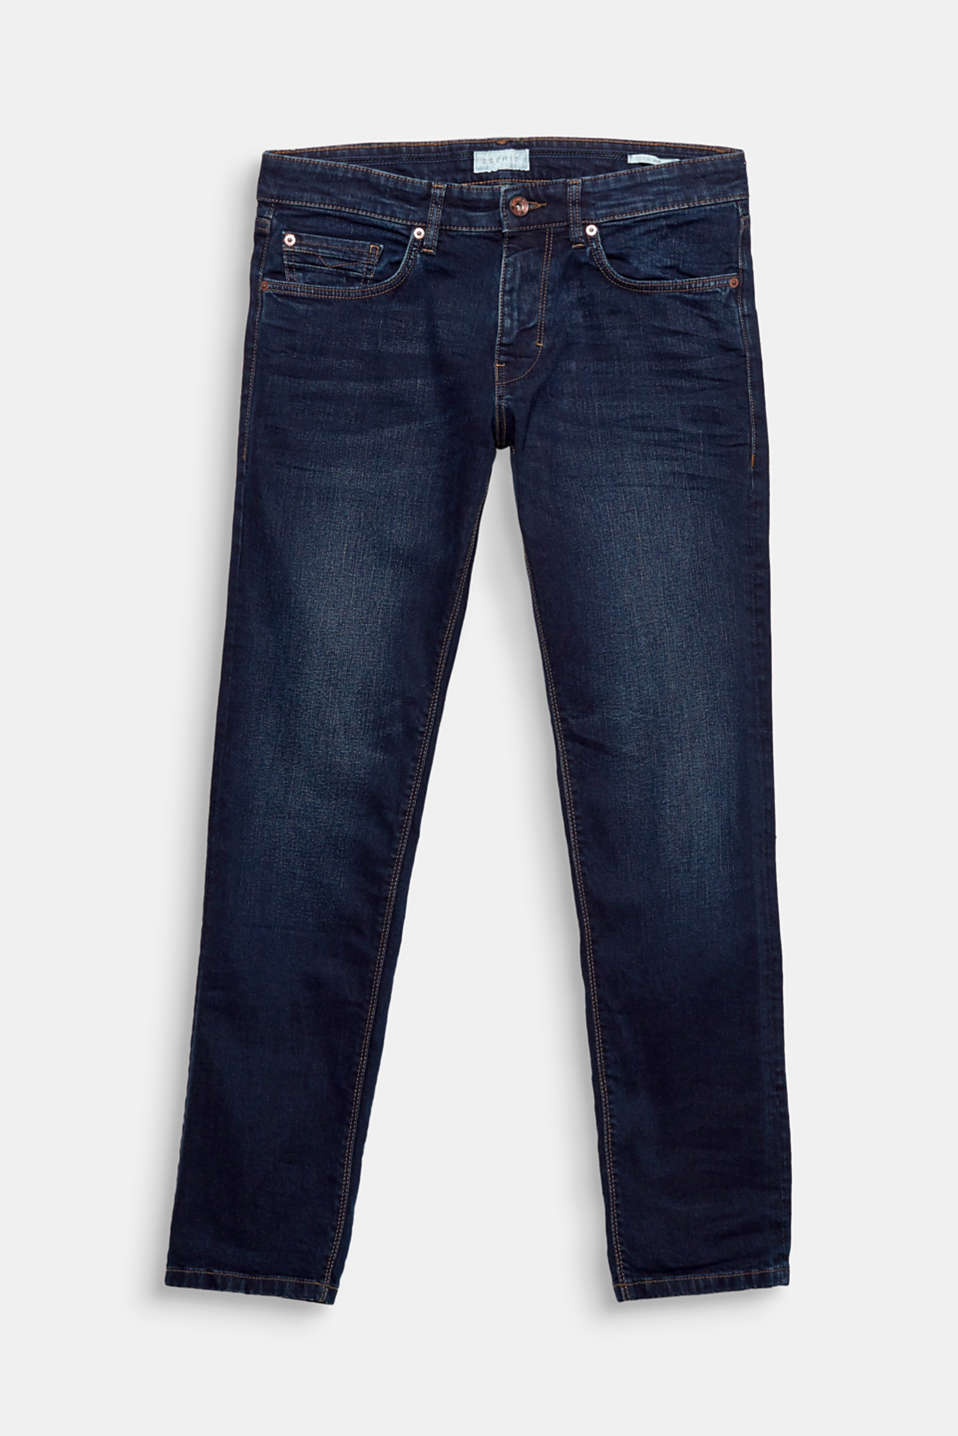 A denim heritage piece! Tobacco stitching and a vintage wash give these jeans their characteristic look.